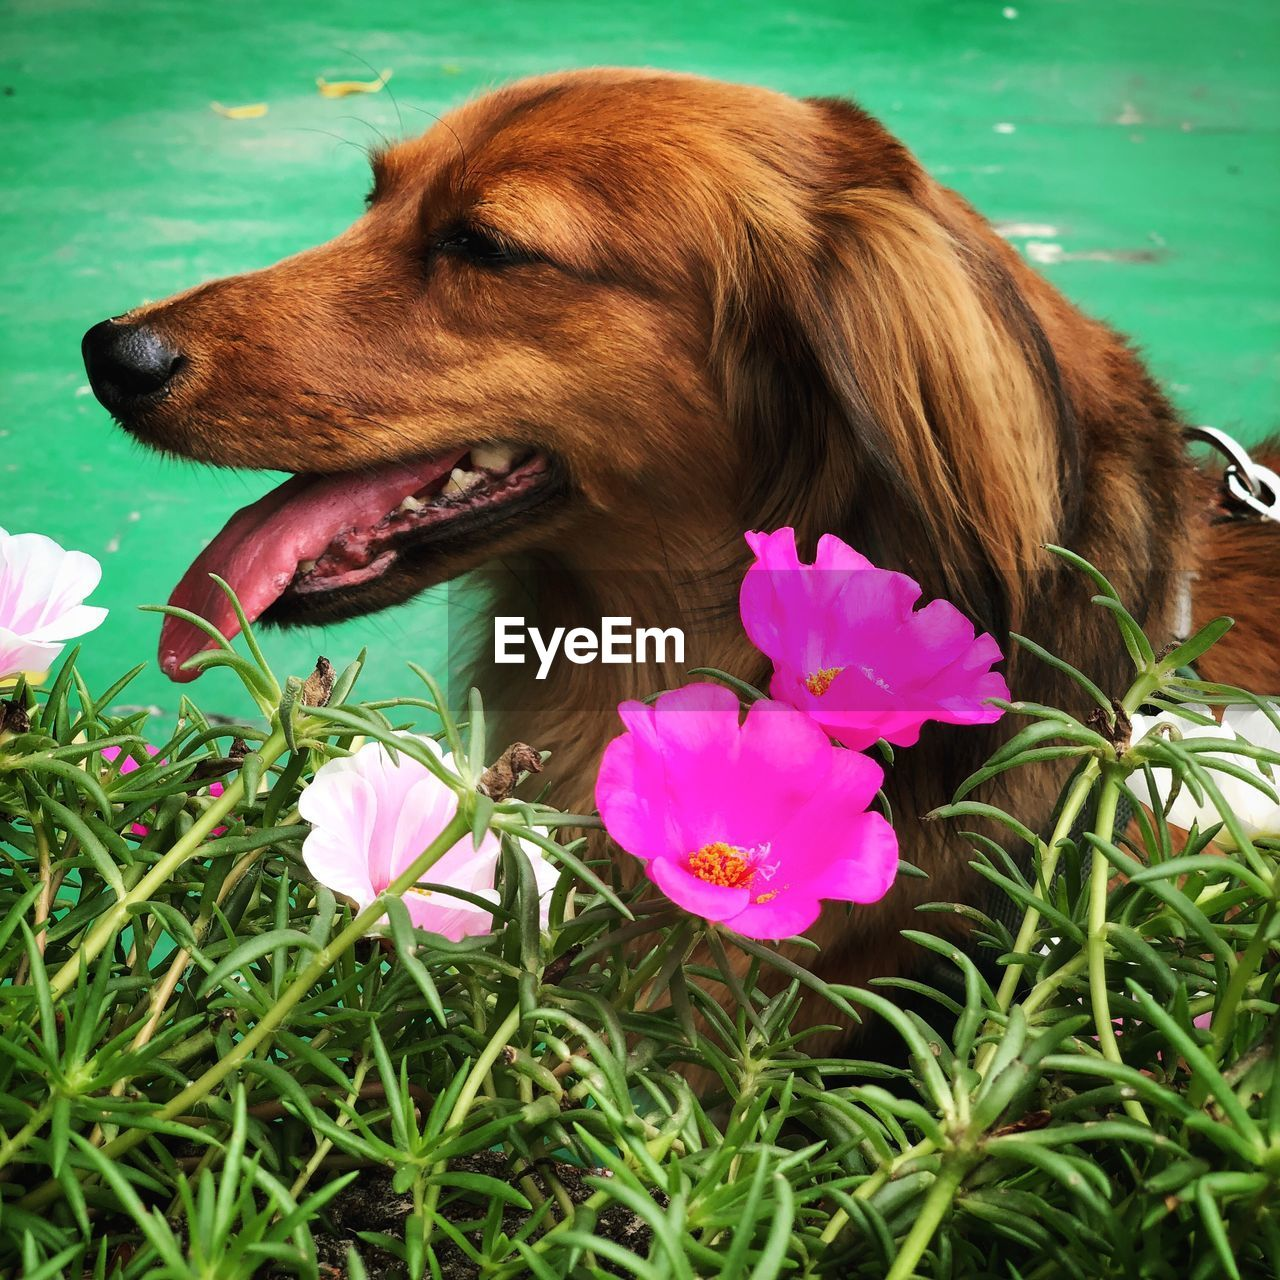 one animal, plant, flowering plant, flower, dog, animal themes, mammal, animal, canine, pets, domestic animals, domestic, vertebrate, grass, nature, close-up, green color, pink color, no people, brown, animal tongue, mouth open, animal head